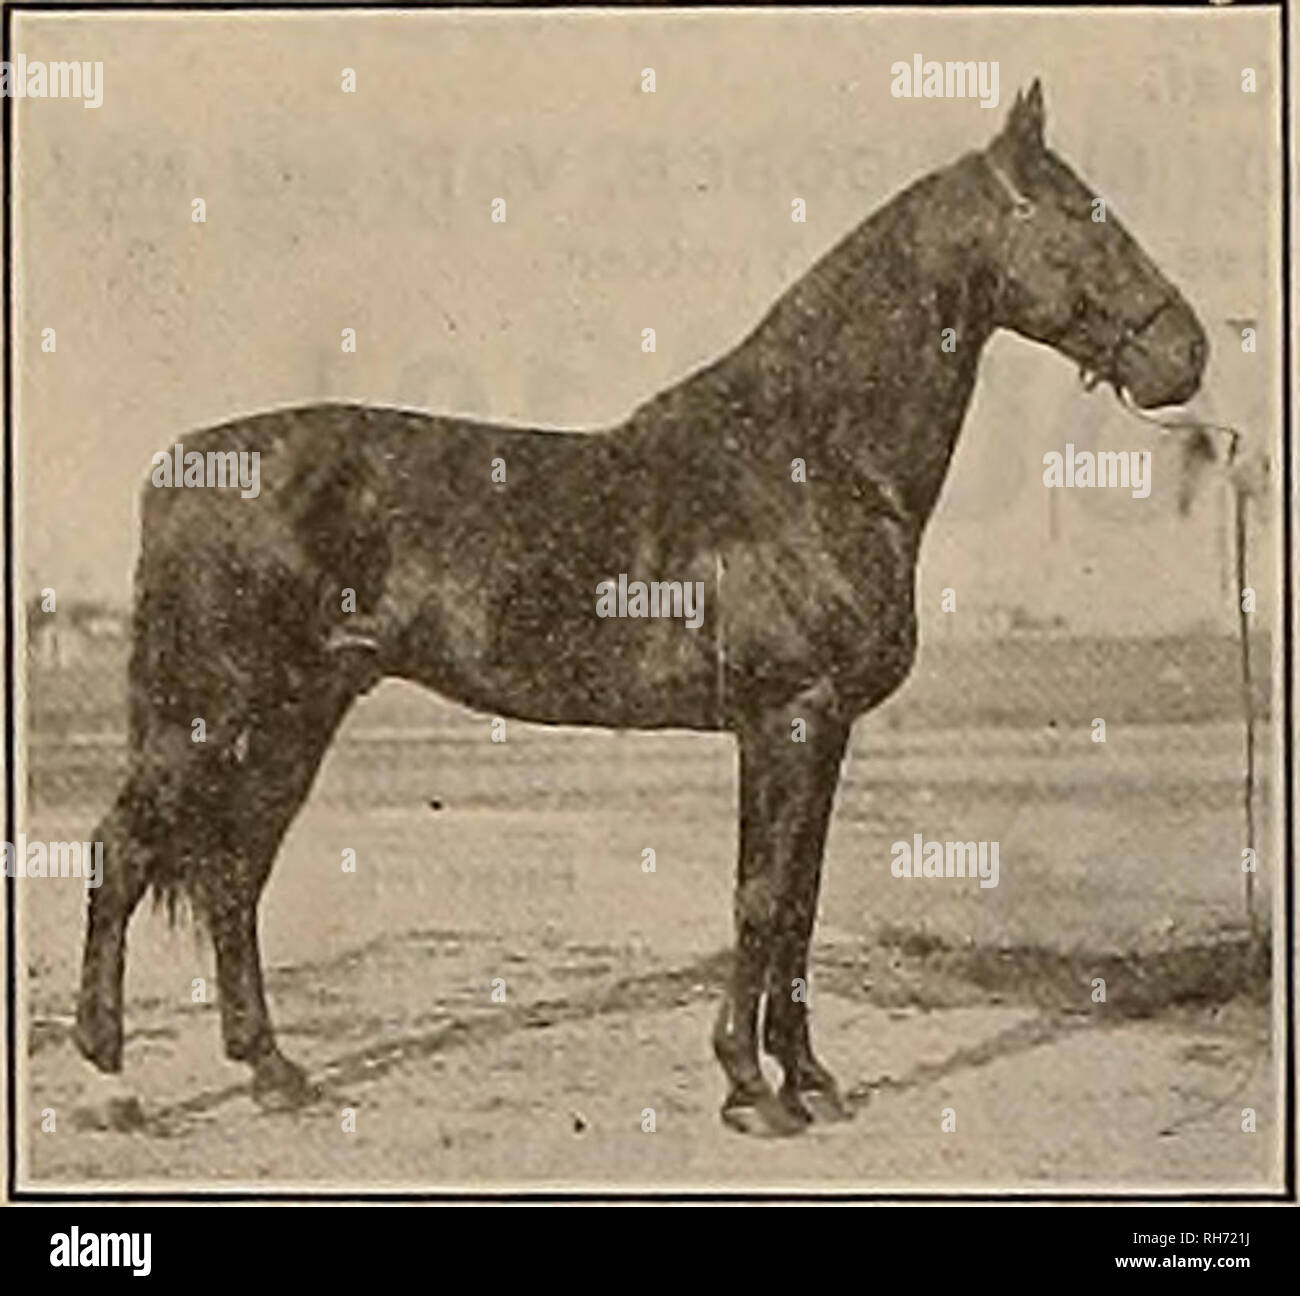 . Breeder and sportsman. Horses. MOKO HALL 2:11. Son of Walnut; Hall 2:081-4 Winner of (he Kentucky Futurity for Two-year- olds, and sire of The Harvester 2:01 The World's Champion Trotting' Stallion. Martha Tipton 2:09!.,. Warner Hall (1) 2:0«>w, O'NeU 2-.0TA. etc. The dam of MOKO HALL was by the most fashionable sire of trotters in the United States today, and that horse is MOKO. MOKO HALL is bred in the top crosses just like The Harvester, who was also by Walnut Hall, out of a mare by Moko, the sire of 104 in 2:30, including such stake winners as Fereno 2:05%, Tenara 2:05%, Native Belle  - Stock Image